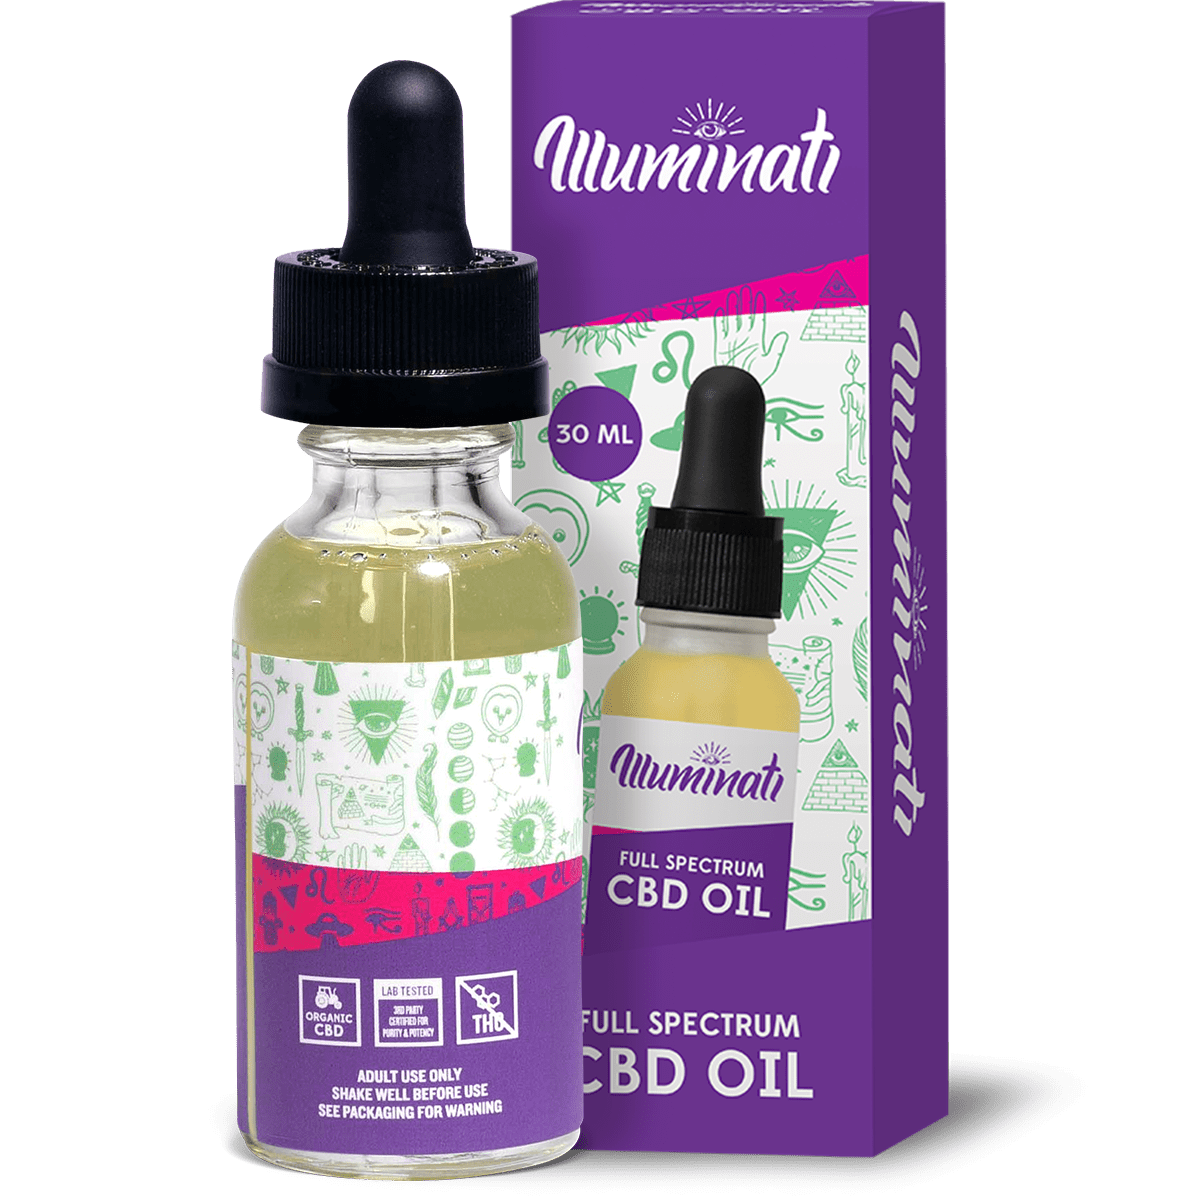 Illuminati Full Spectrum CBD Oil Drops 25mg Back